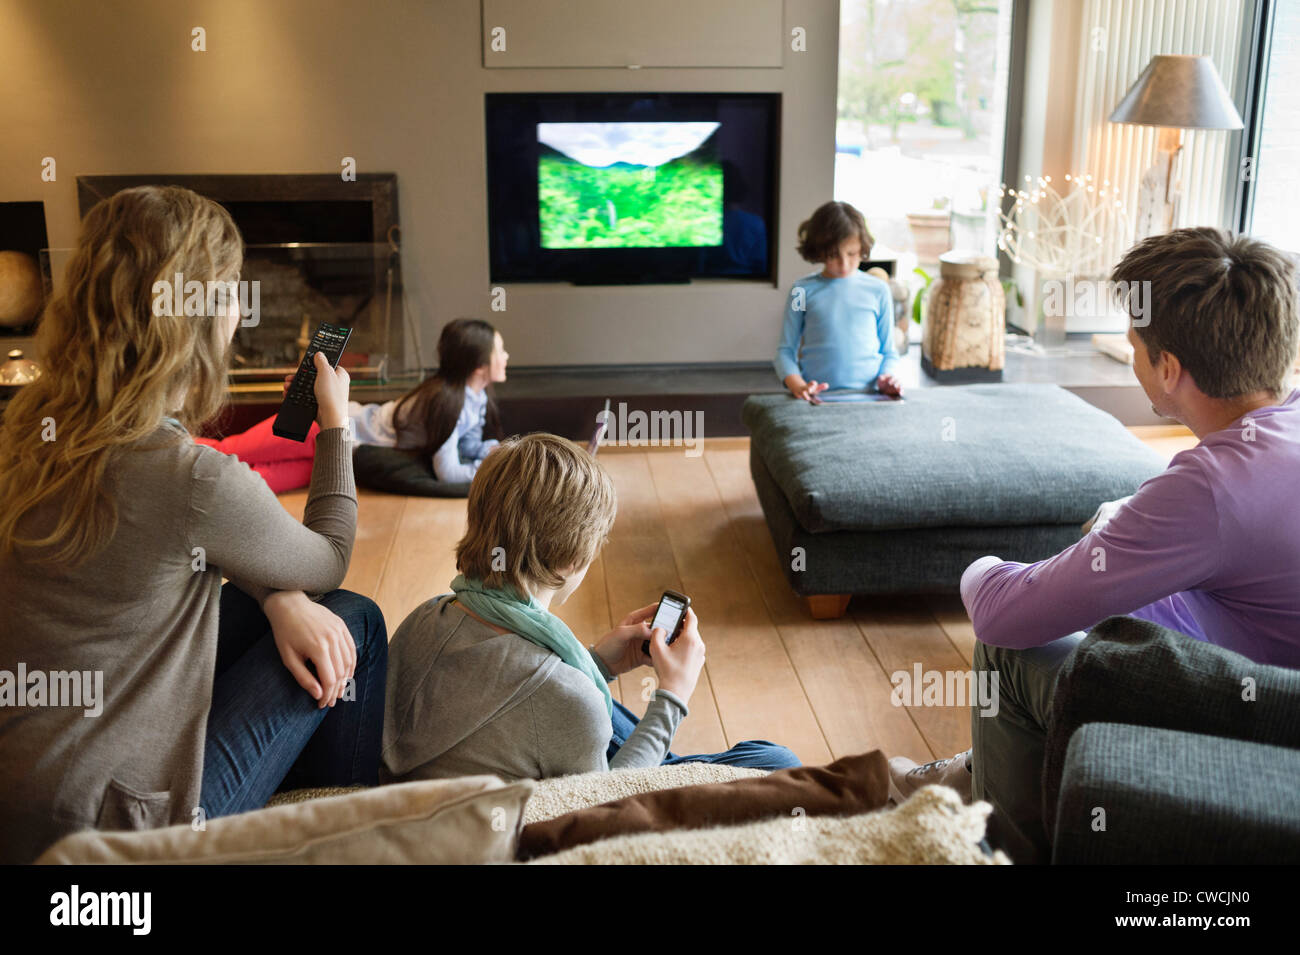 Family using electronic gadgets in a living room stock for Modern living room gadgets